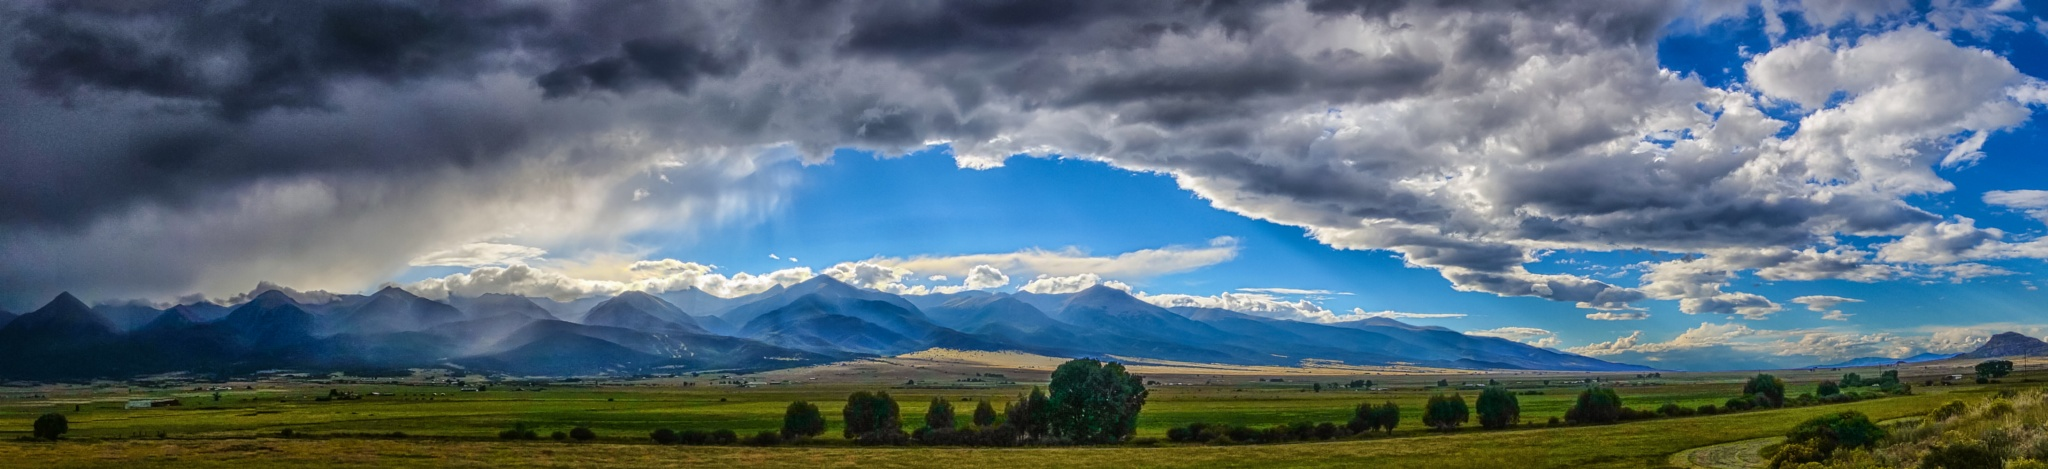 Storm in the Valley by mpayler